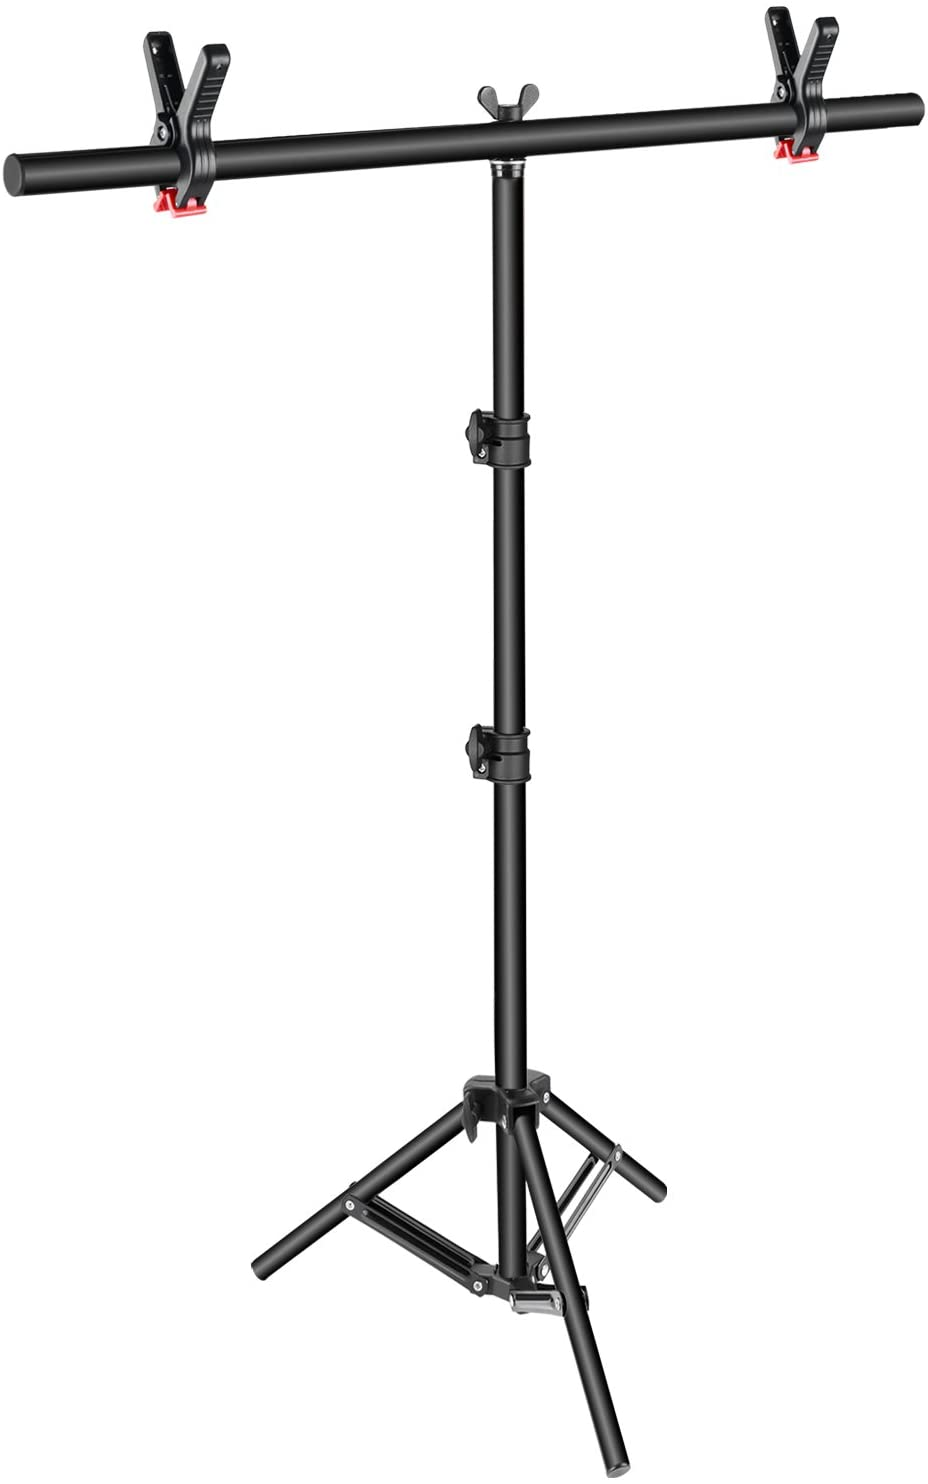 Amazon Com Neewer T Shape Background Backdrop Support Stand Kit 32 80 Inches 81 203 Centimeters Adjustable Tripod Stand And 35 4 Inches 90 Centimeters Crossbar With 2 Tight Clamps For Video Studio Photography Camera Photo